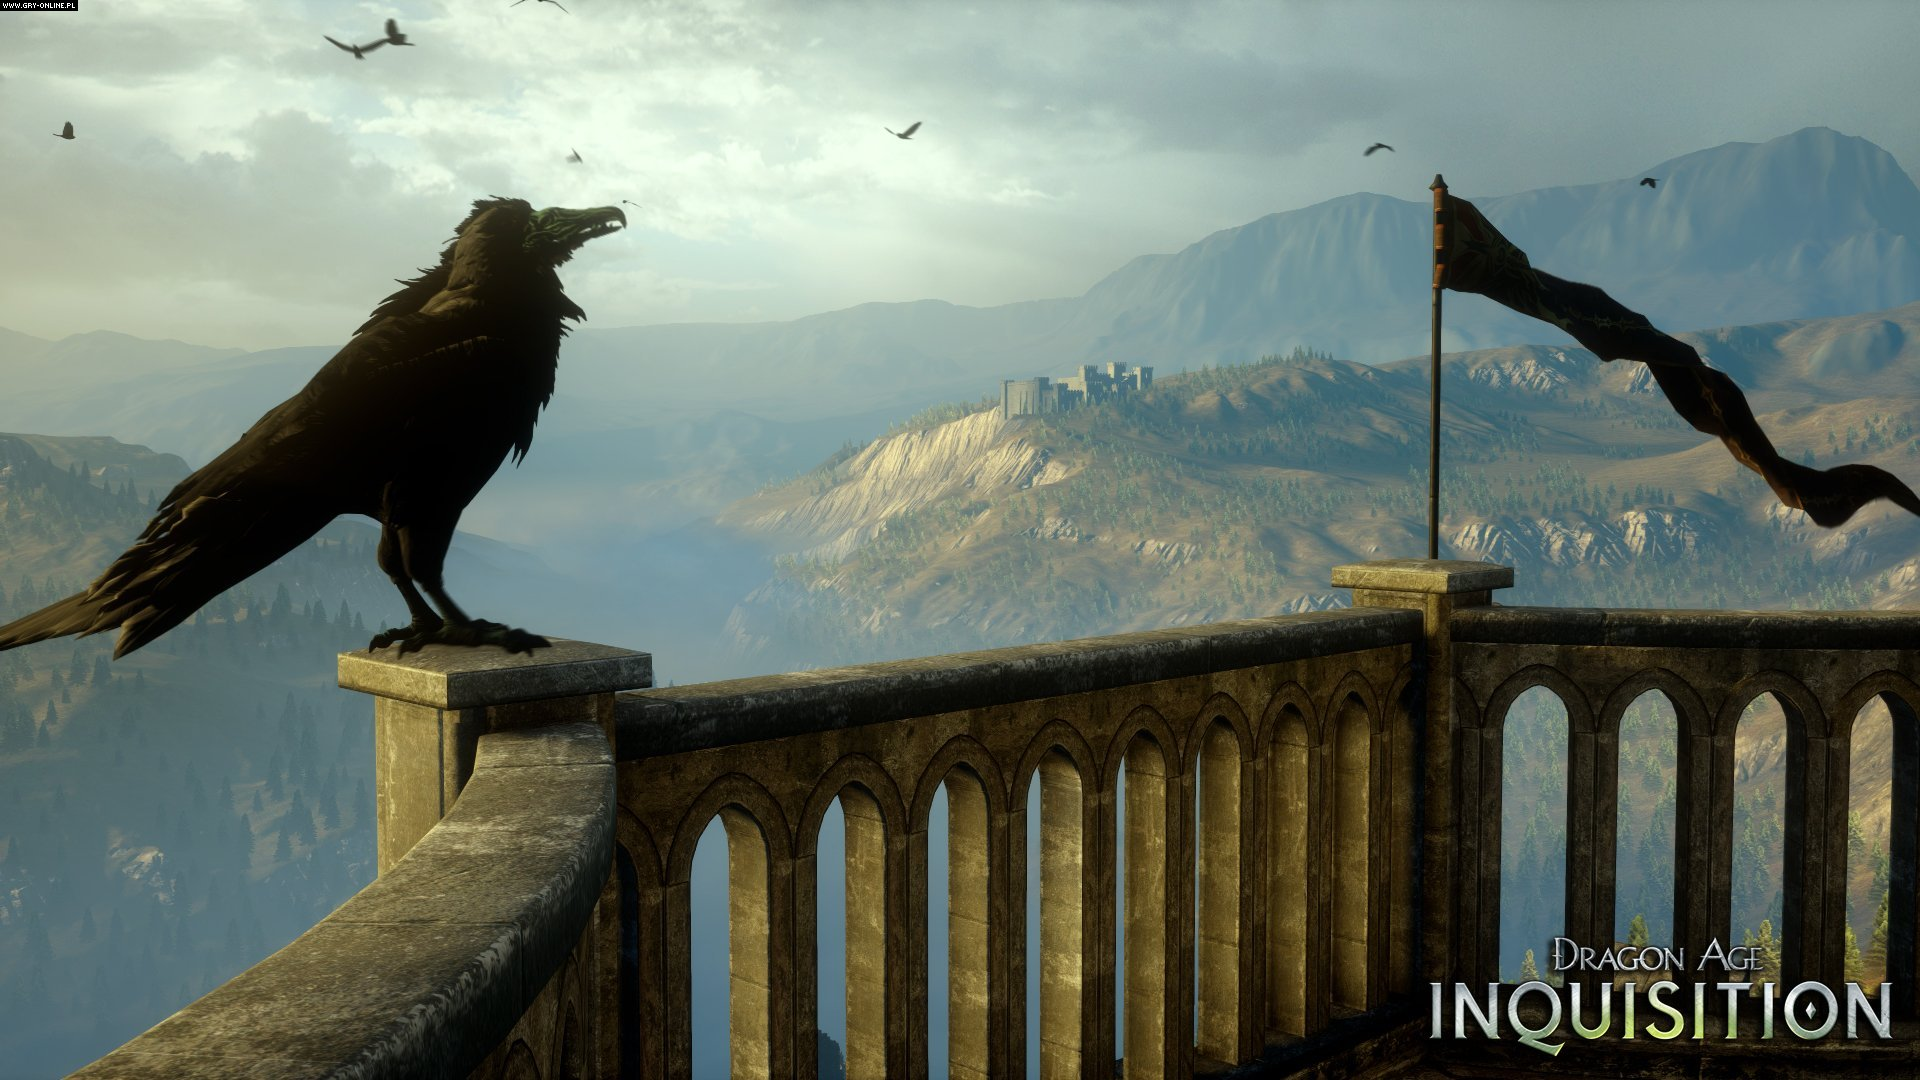 Dragon Age: Inquisition PC, X360, PS3, PS4, XONE Games Image 170/225, BioWare Corporation, Electronic Arts Inc.